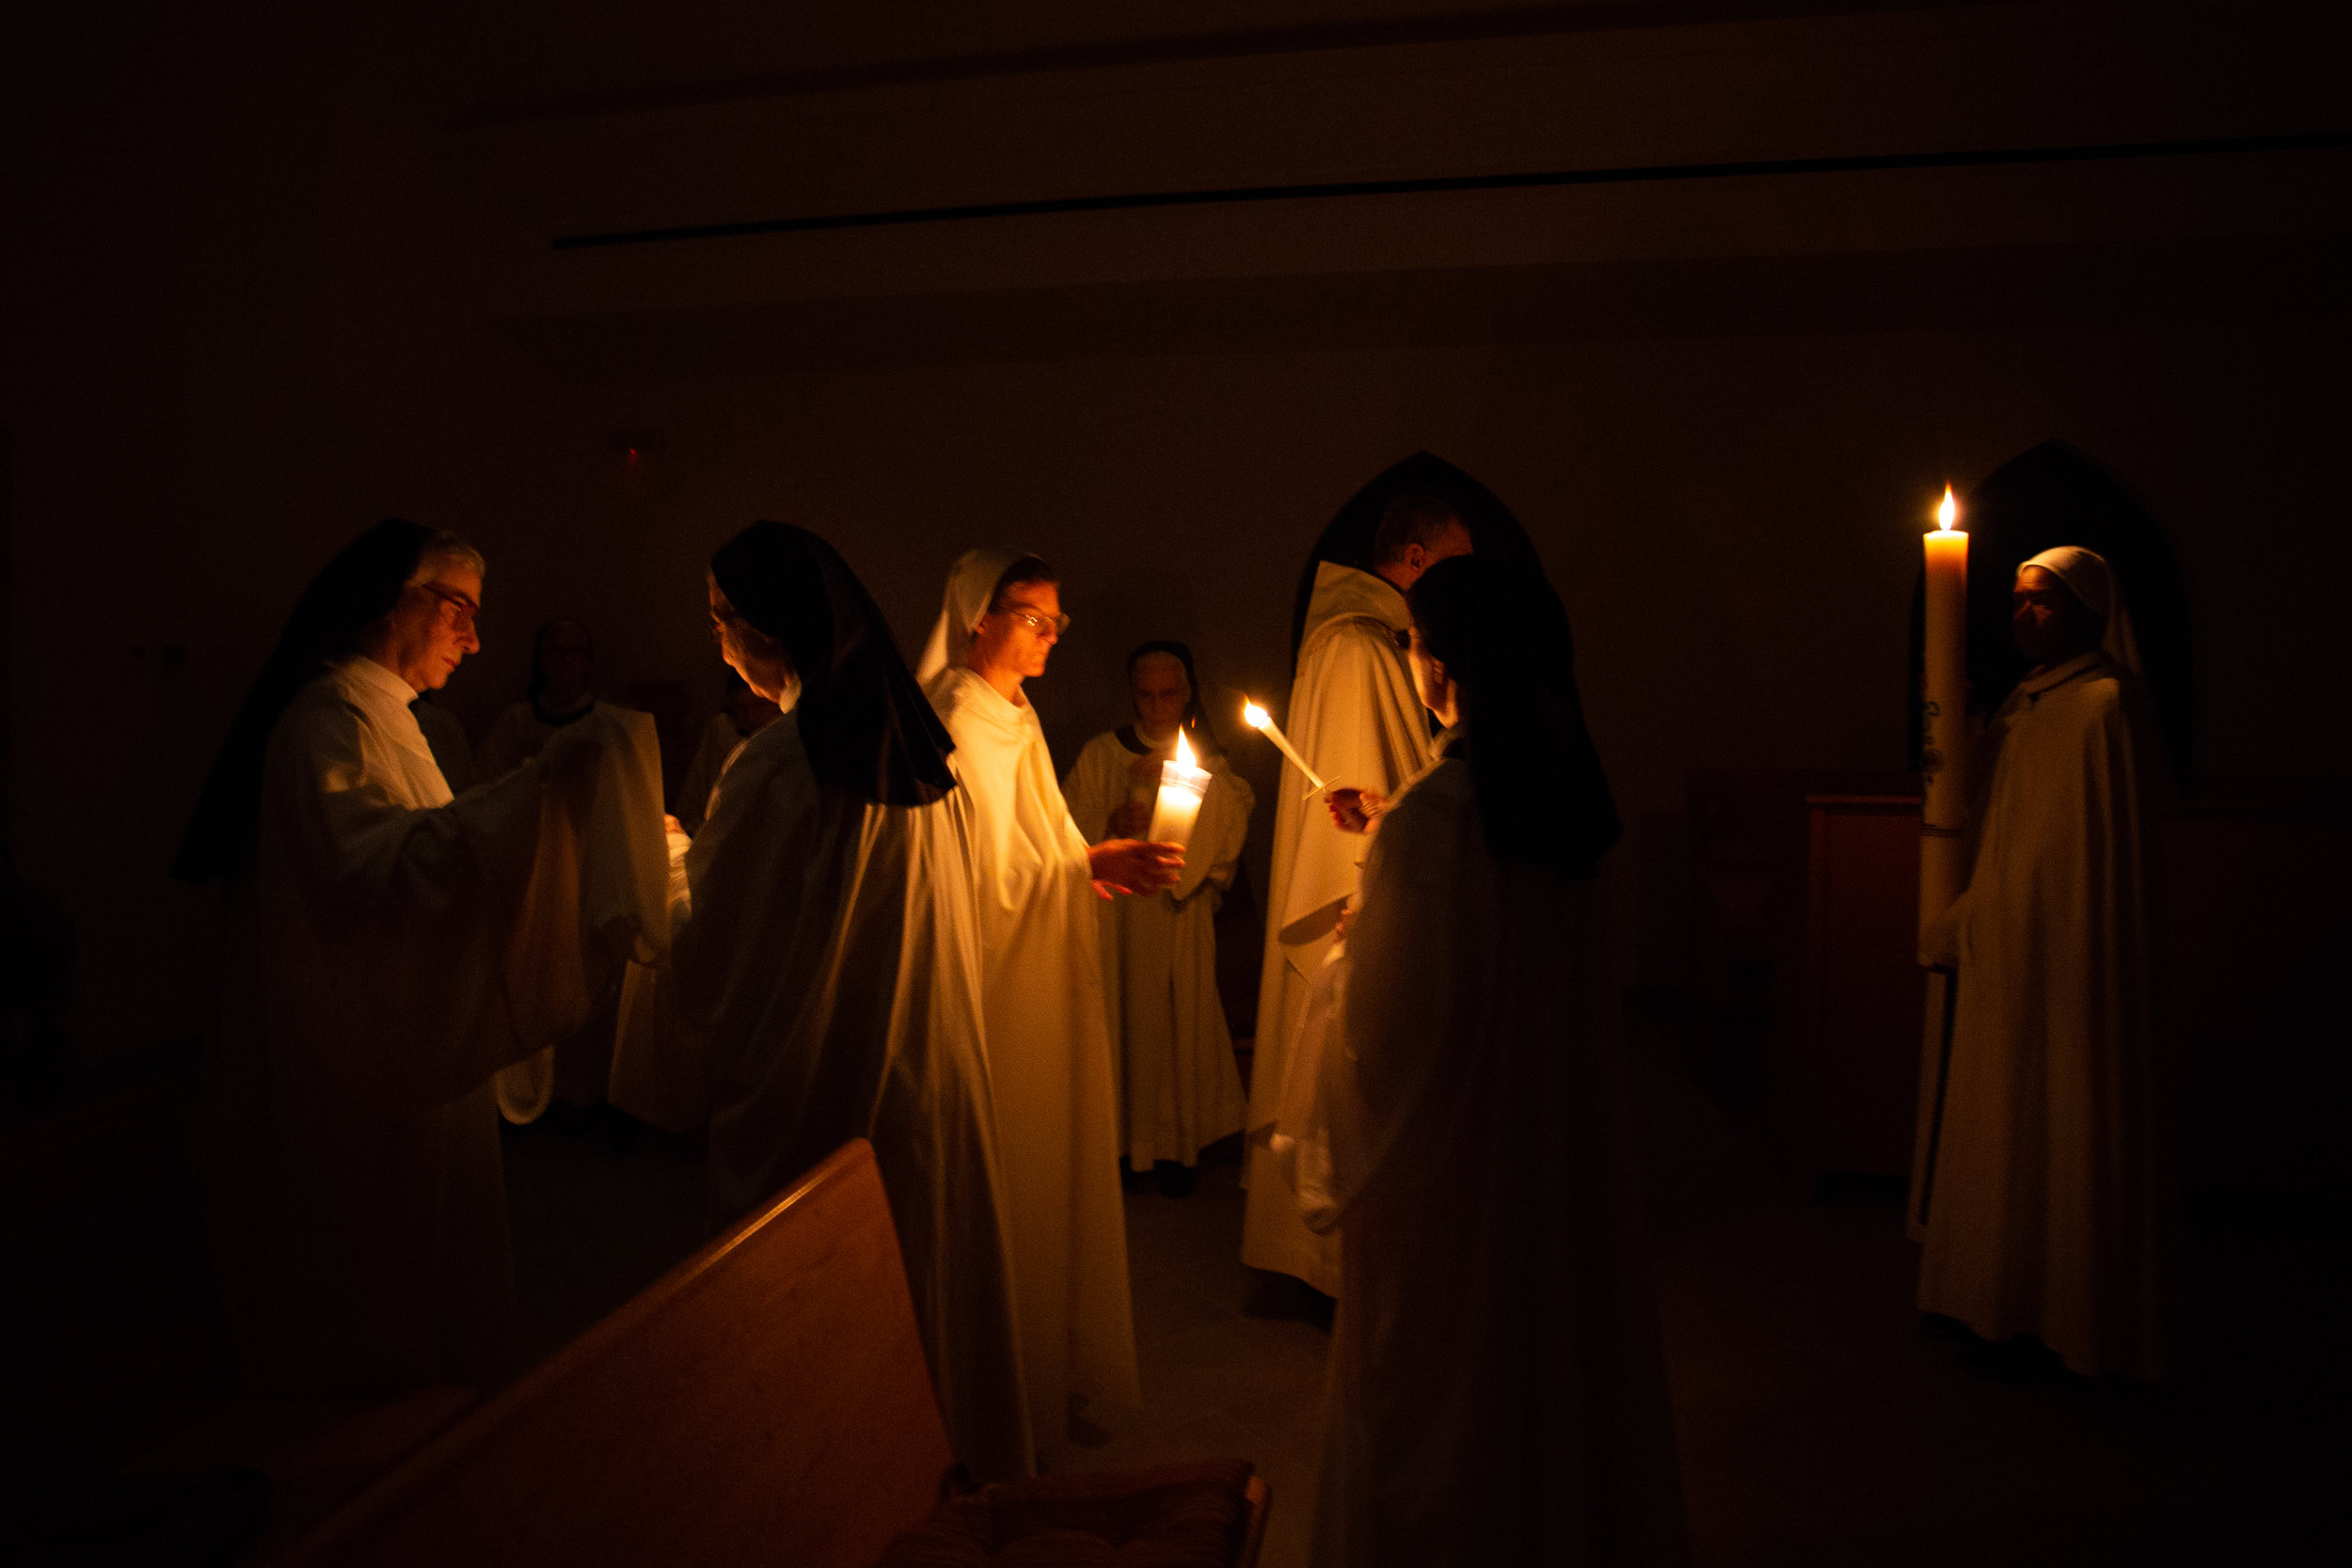 The sisters and guests stand in silence as they light candles Saturday evening April 20, 2019 in Crozet, Virginia. This ends their procession into the church for Easter mass.